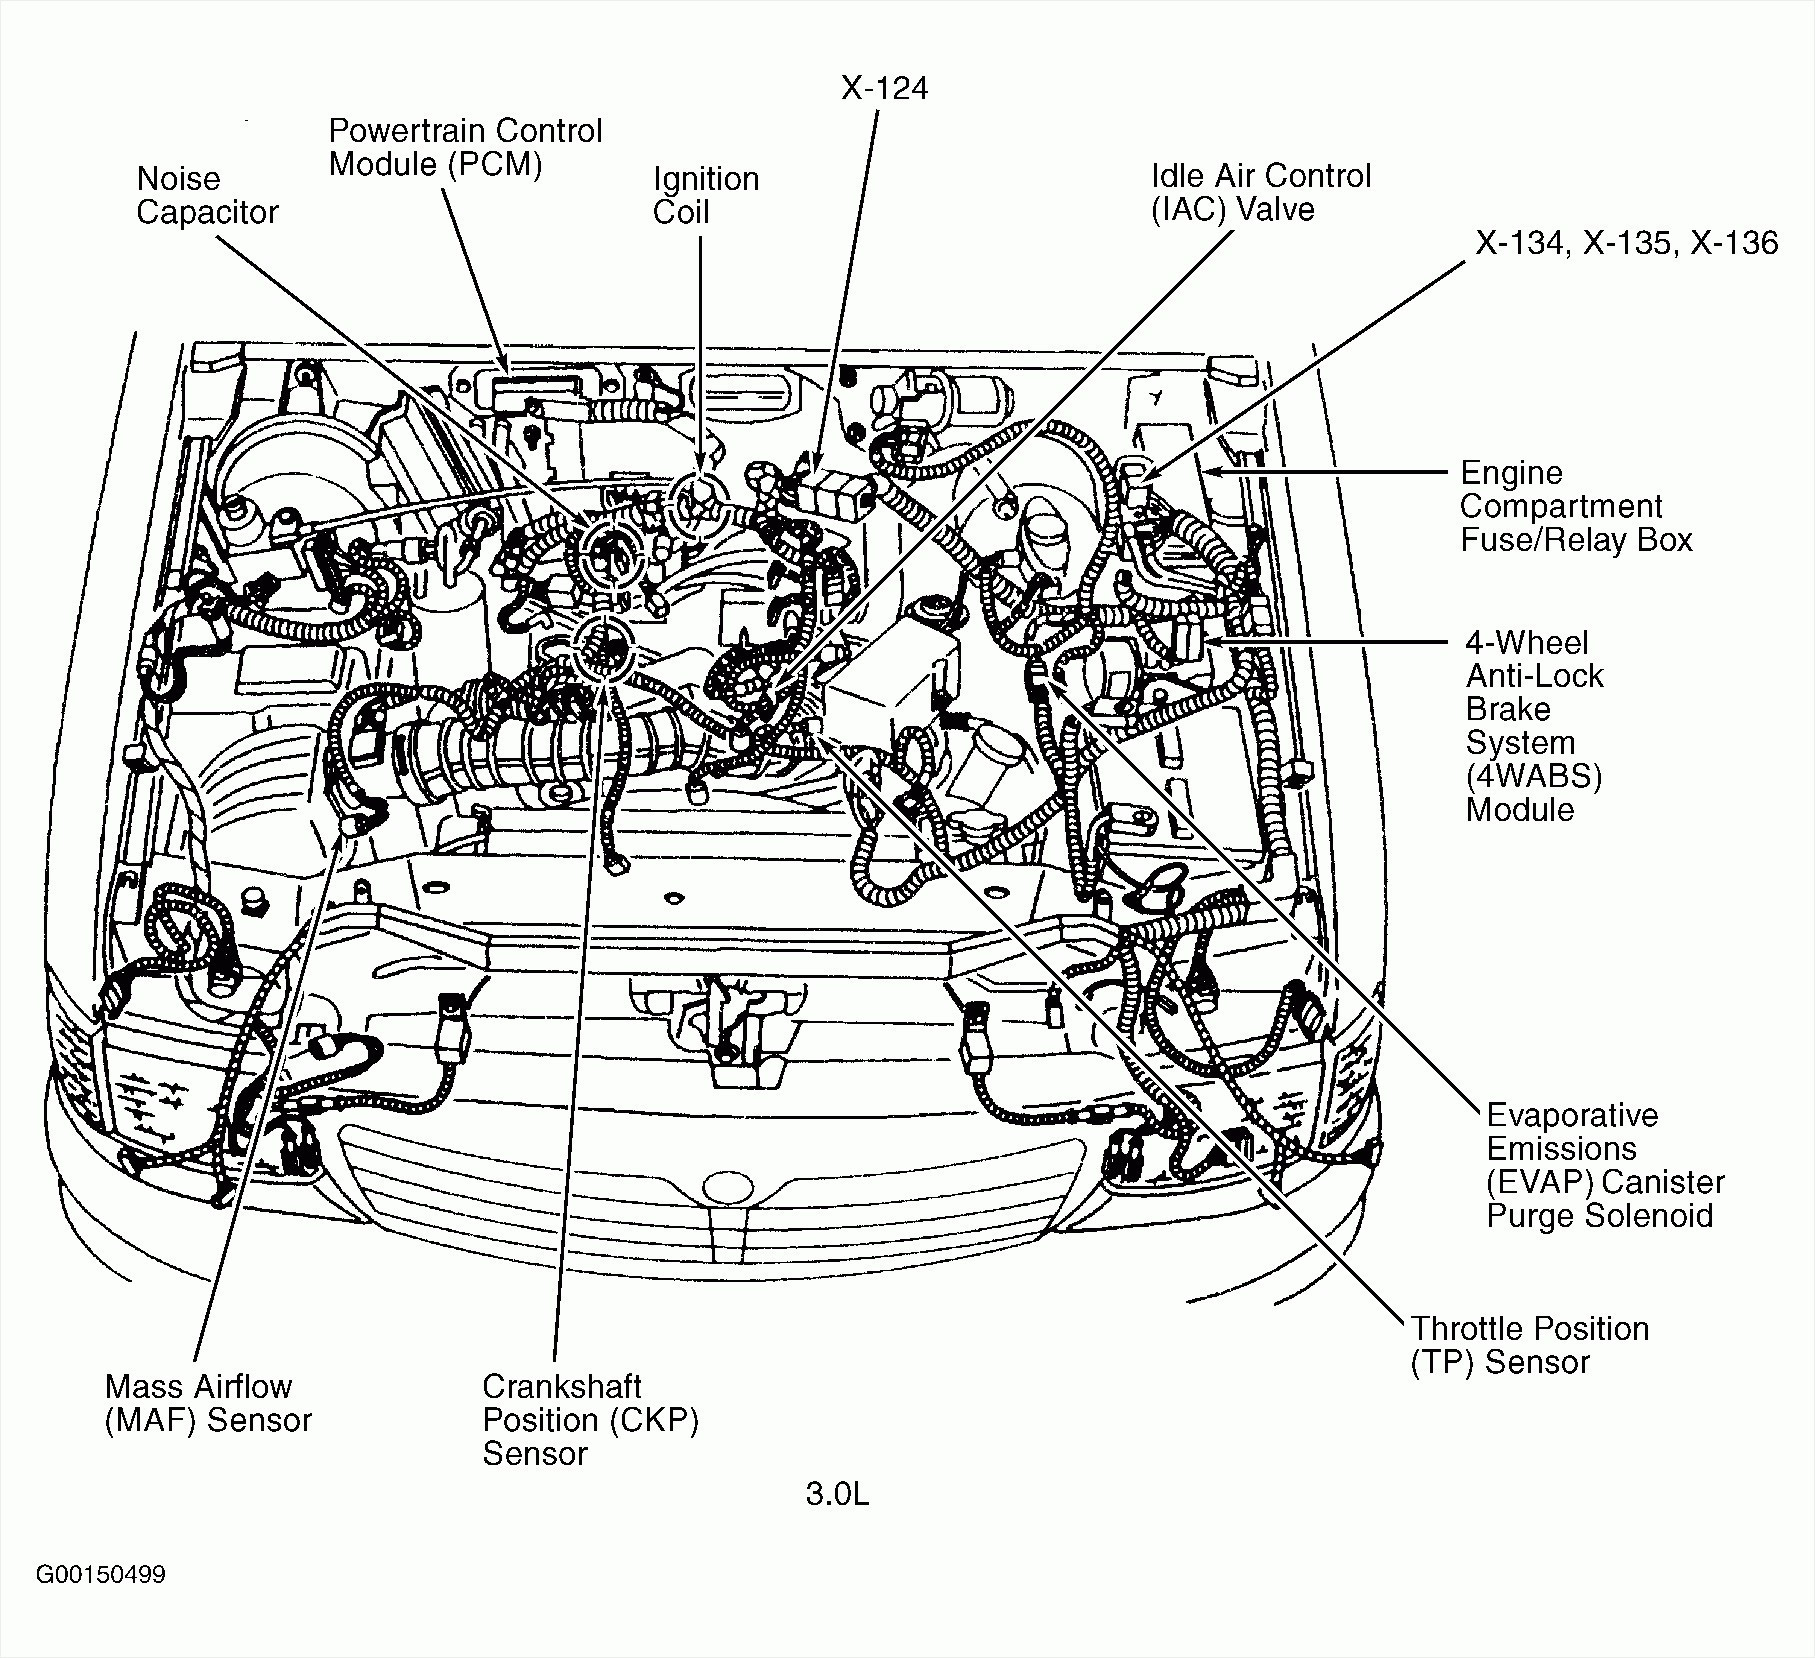 Chevrolet 3 1 Engine Diagram -Cushman Minute Miser Wiring Diagram | Begeboy  Wiring Diagram SourceBegeboy Wiring Diagram Source